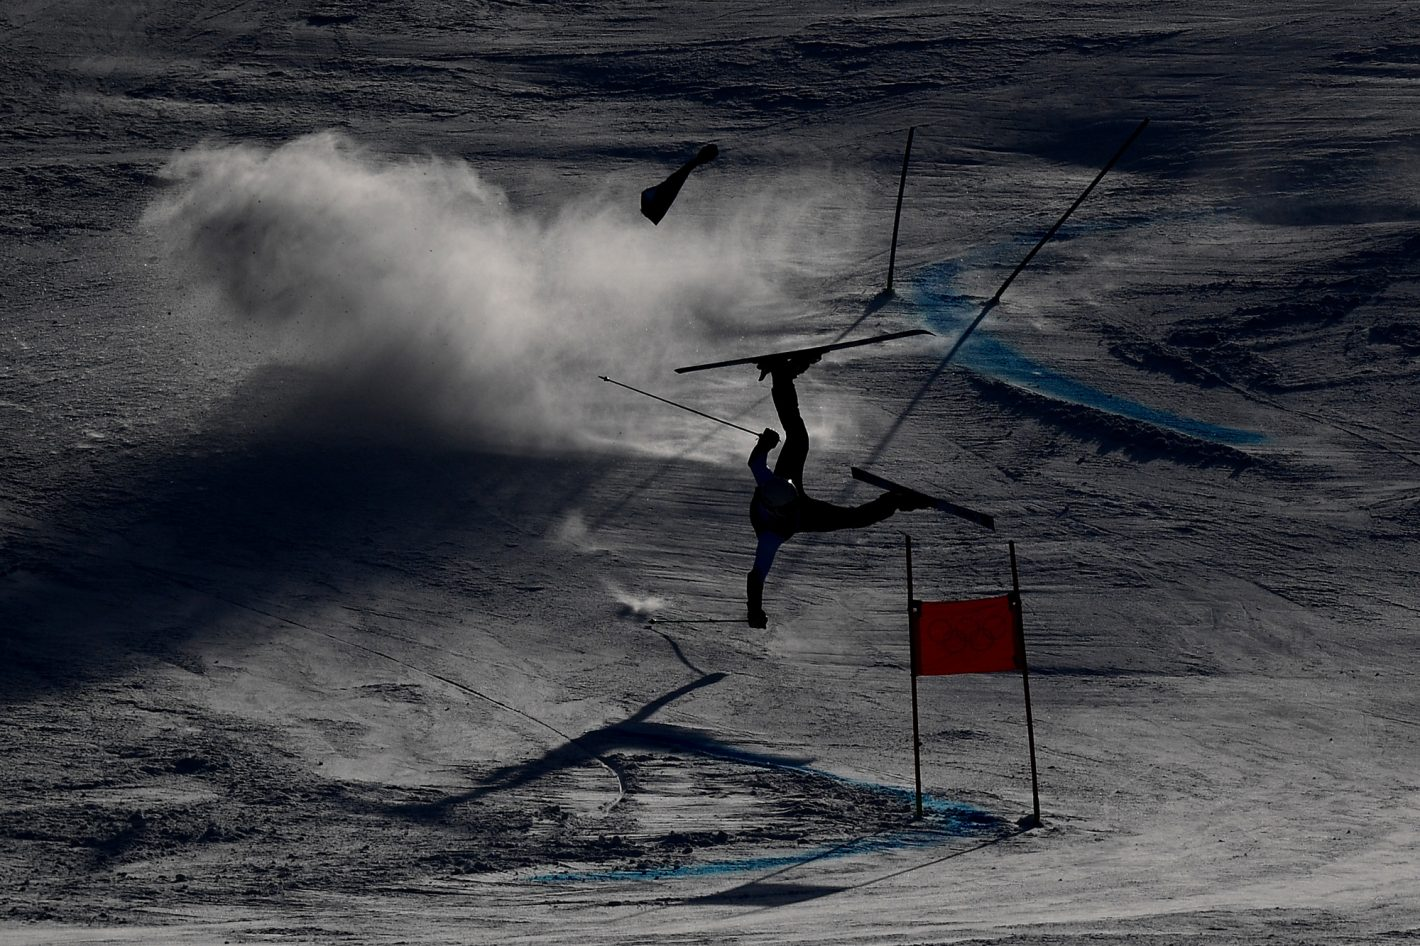 A forerunner crashes prior to the Alpine Skiing Men's Giant Slalom on day nine of the PyeongChang 2018 Winter Olympic Games at Yongpyong Alpine Centre on February 18, 2018 in Pyeongchang-gun, South Korea. Nikon D5 | AF-S NIKKOR 180-400mm f/4E TC1.4 FL ED VR @550mm | ISO 160 | 1/5000s | f/7.1 Photo by Matthias Hangst/Getty Images